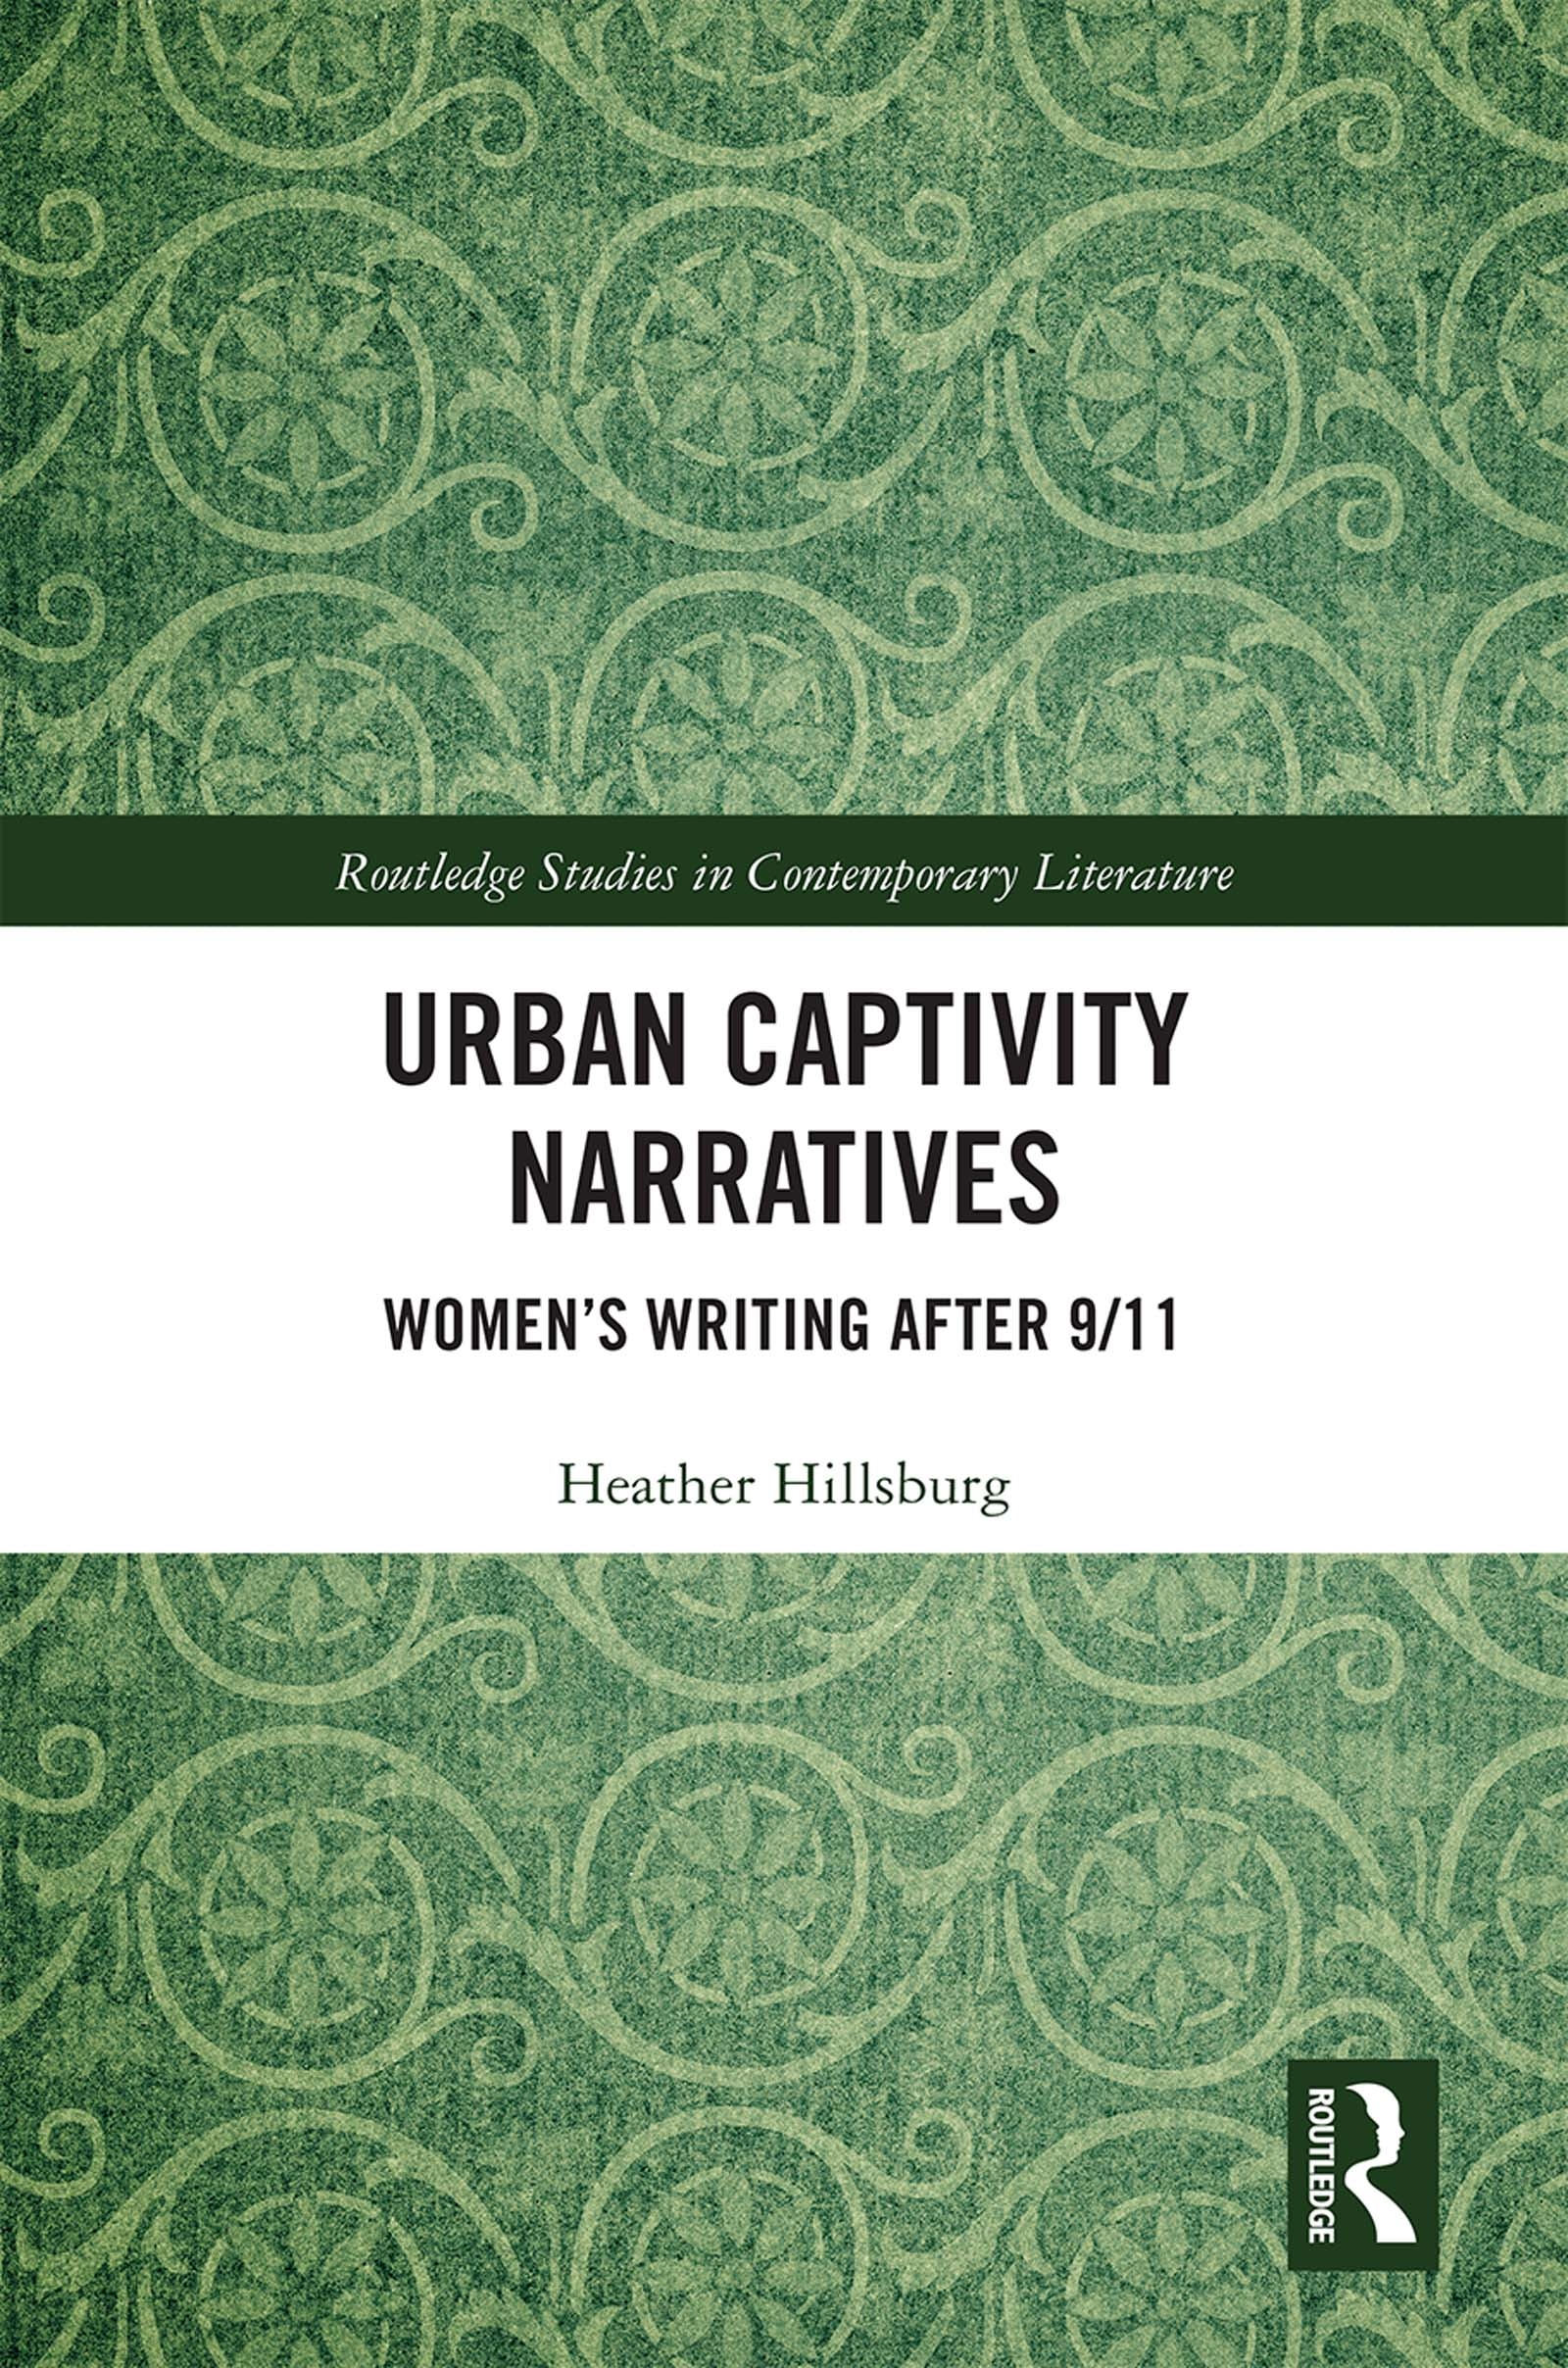 Urban Captivity Narratives: Women's Writing After 9/11, 1st Edition (Hardback) book cover